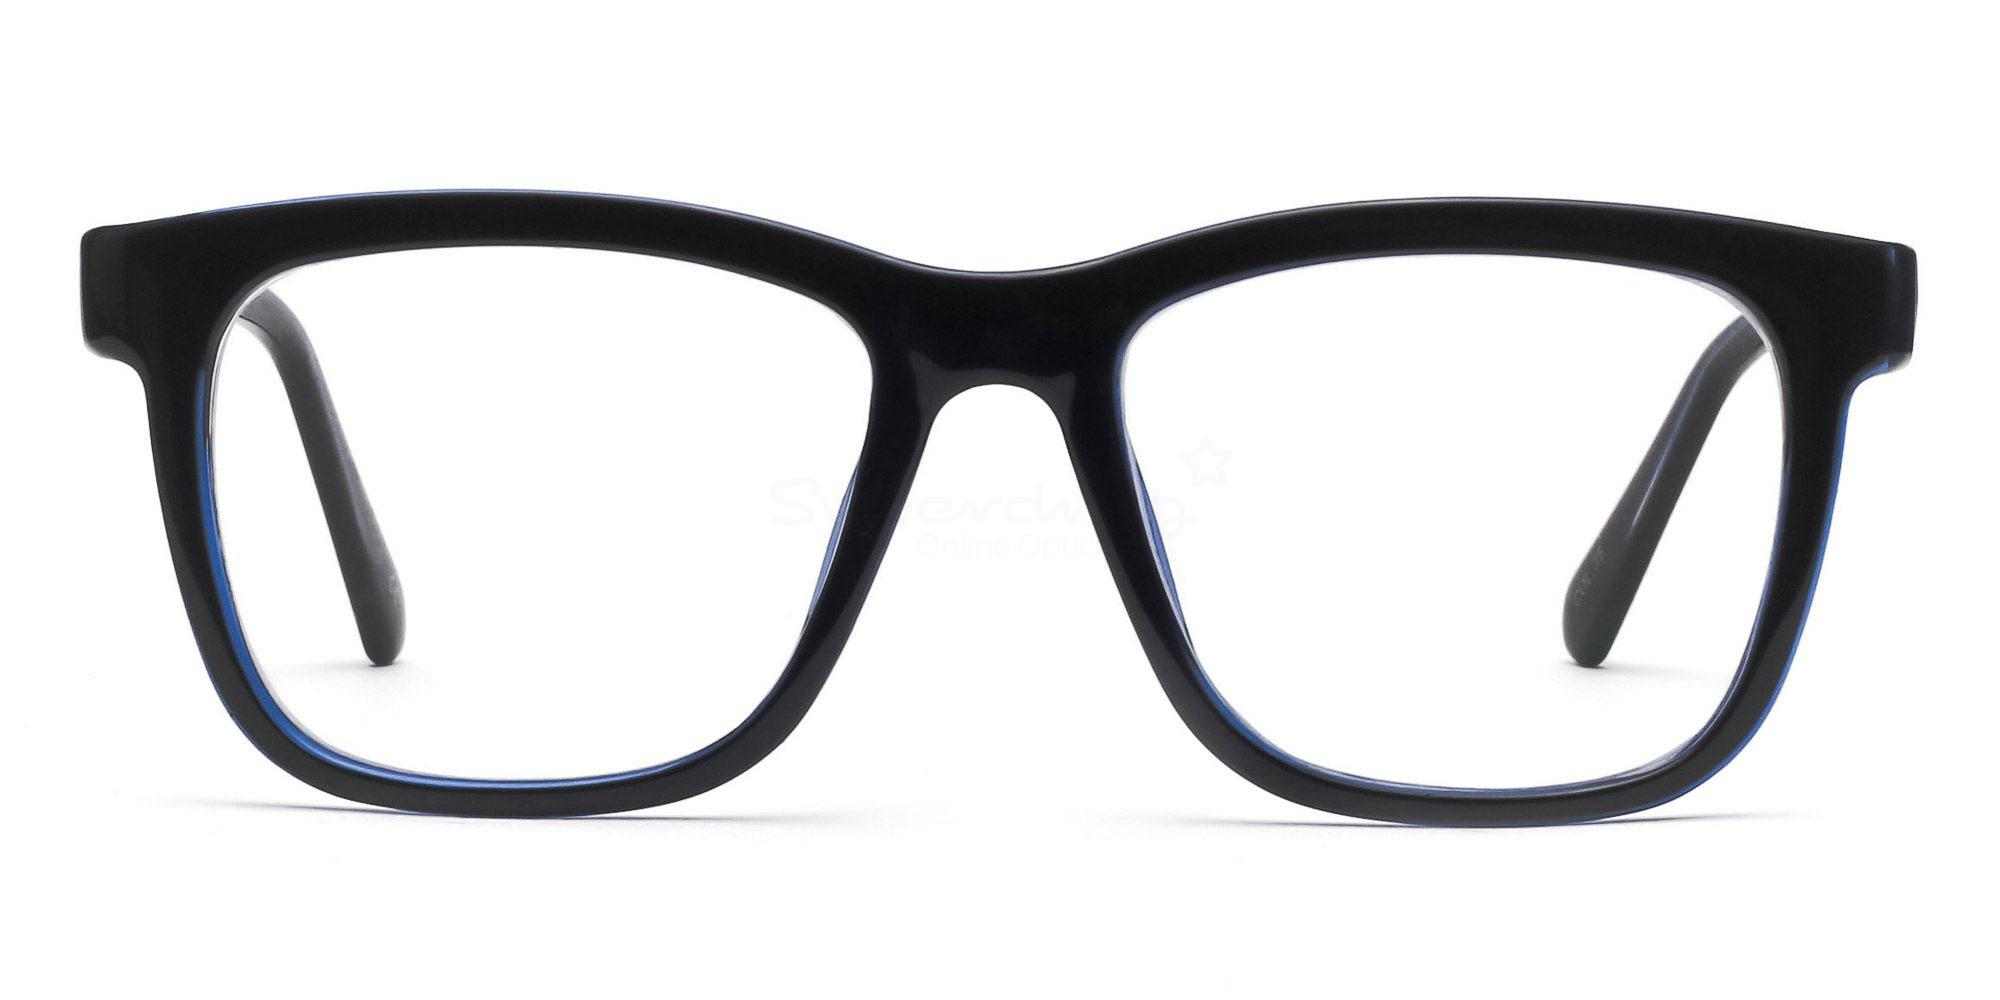 COL.35 2444 - Black and Blue Glasses, Helium